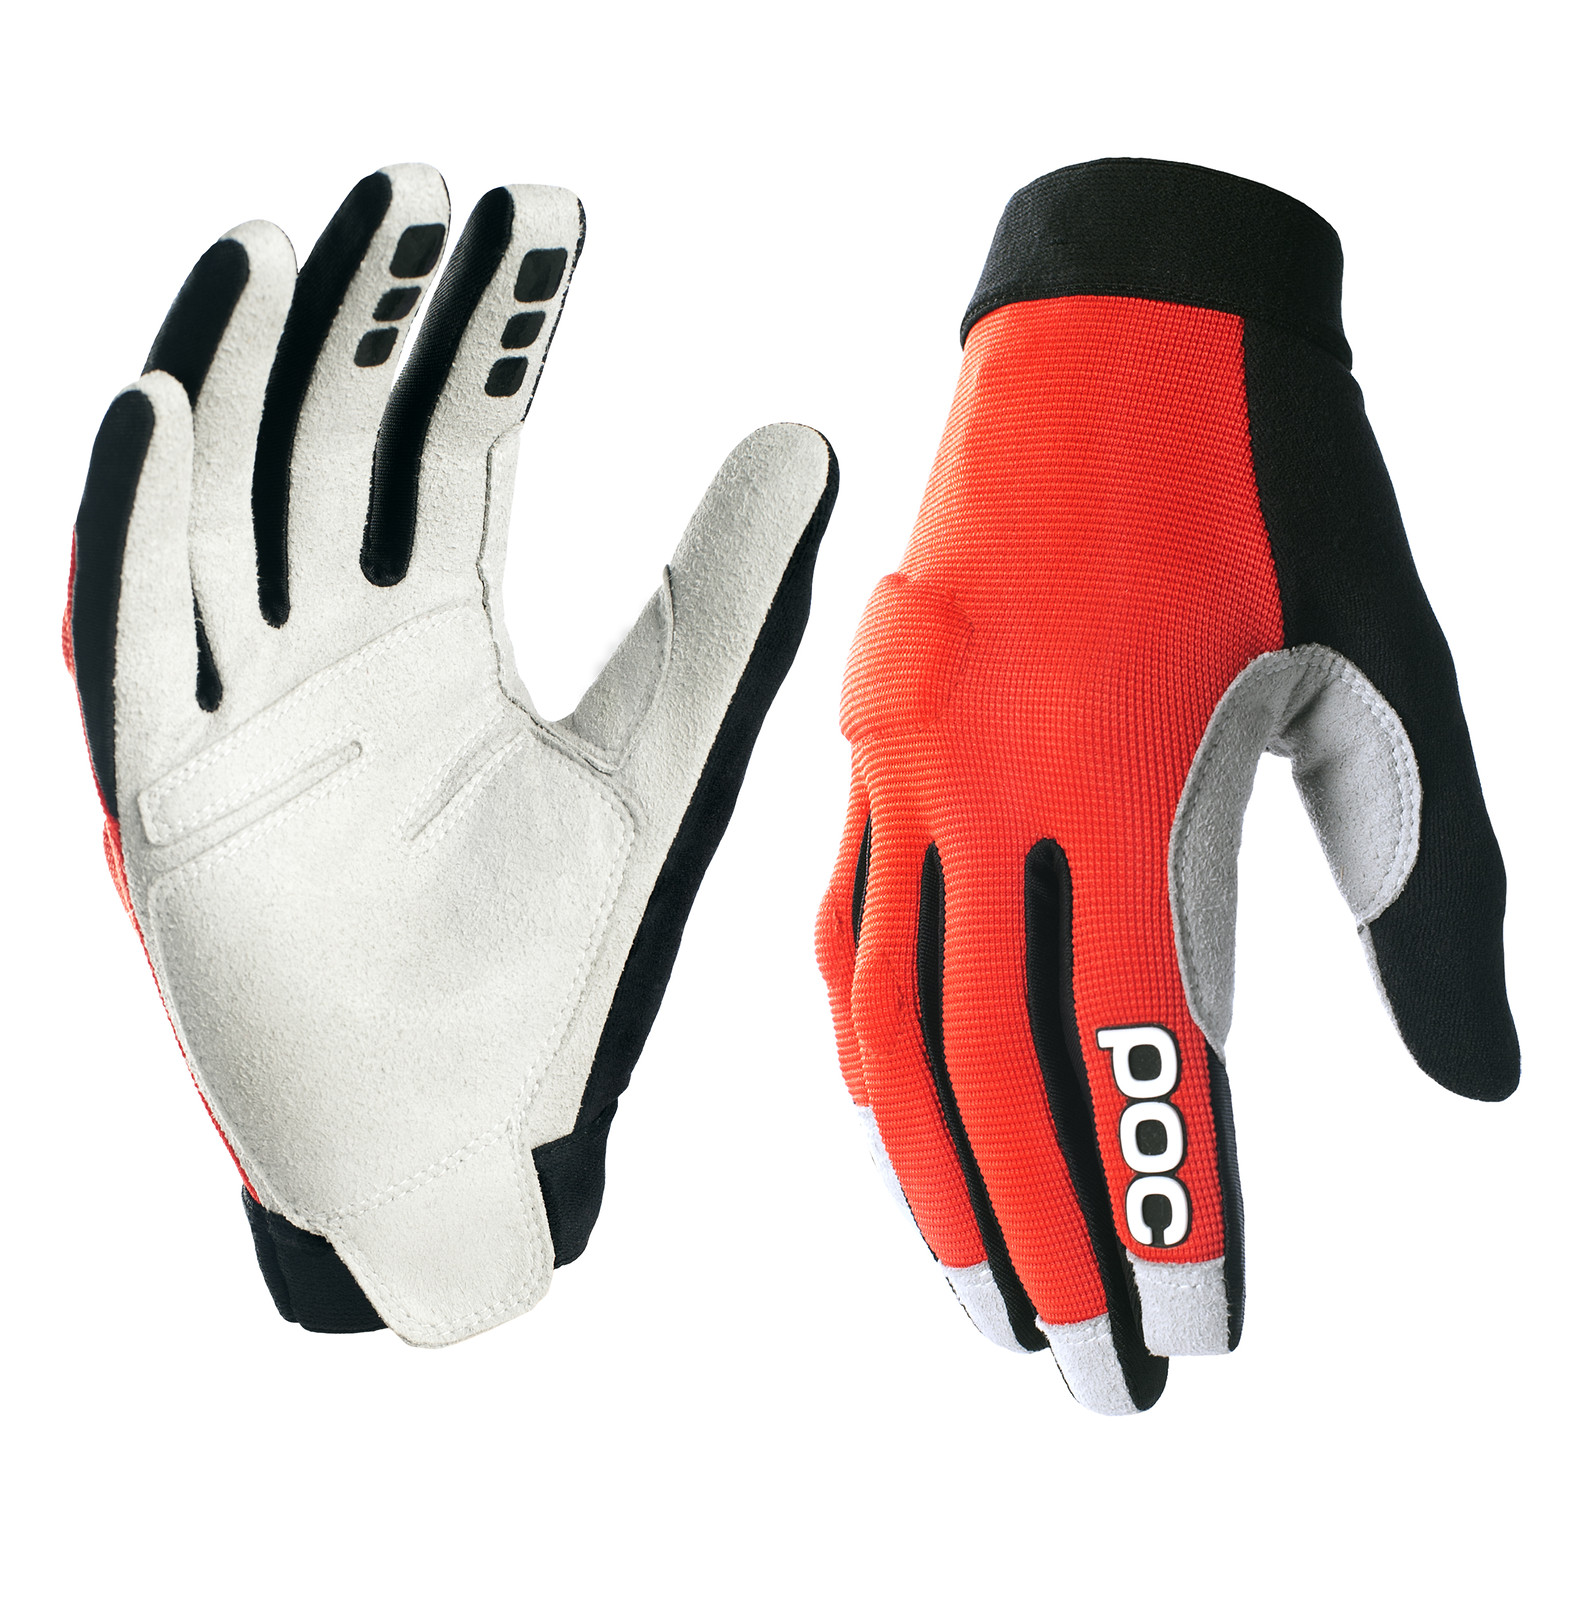 Poc Index Flow Glove Reviews Comparisons Specs